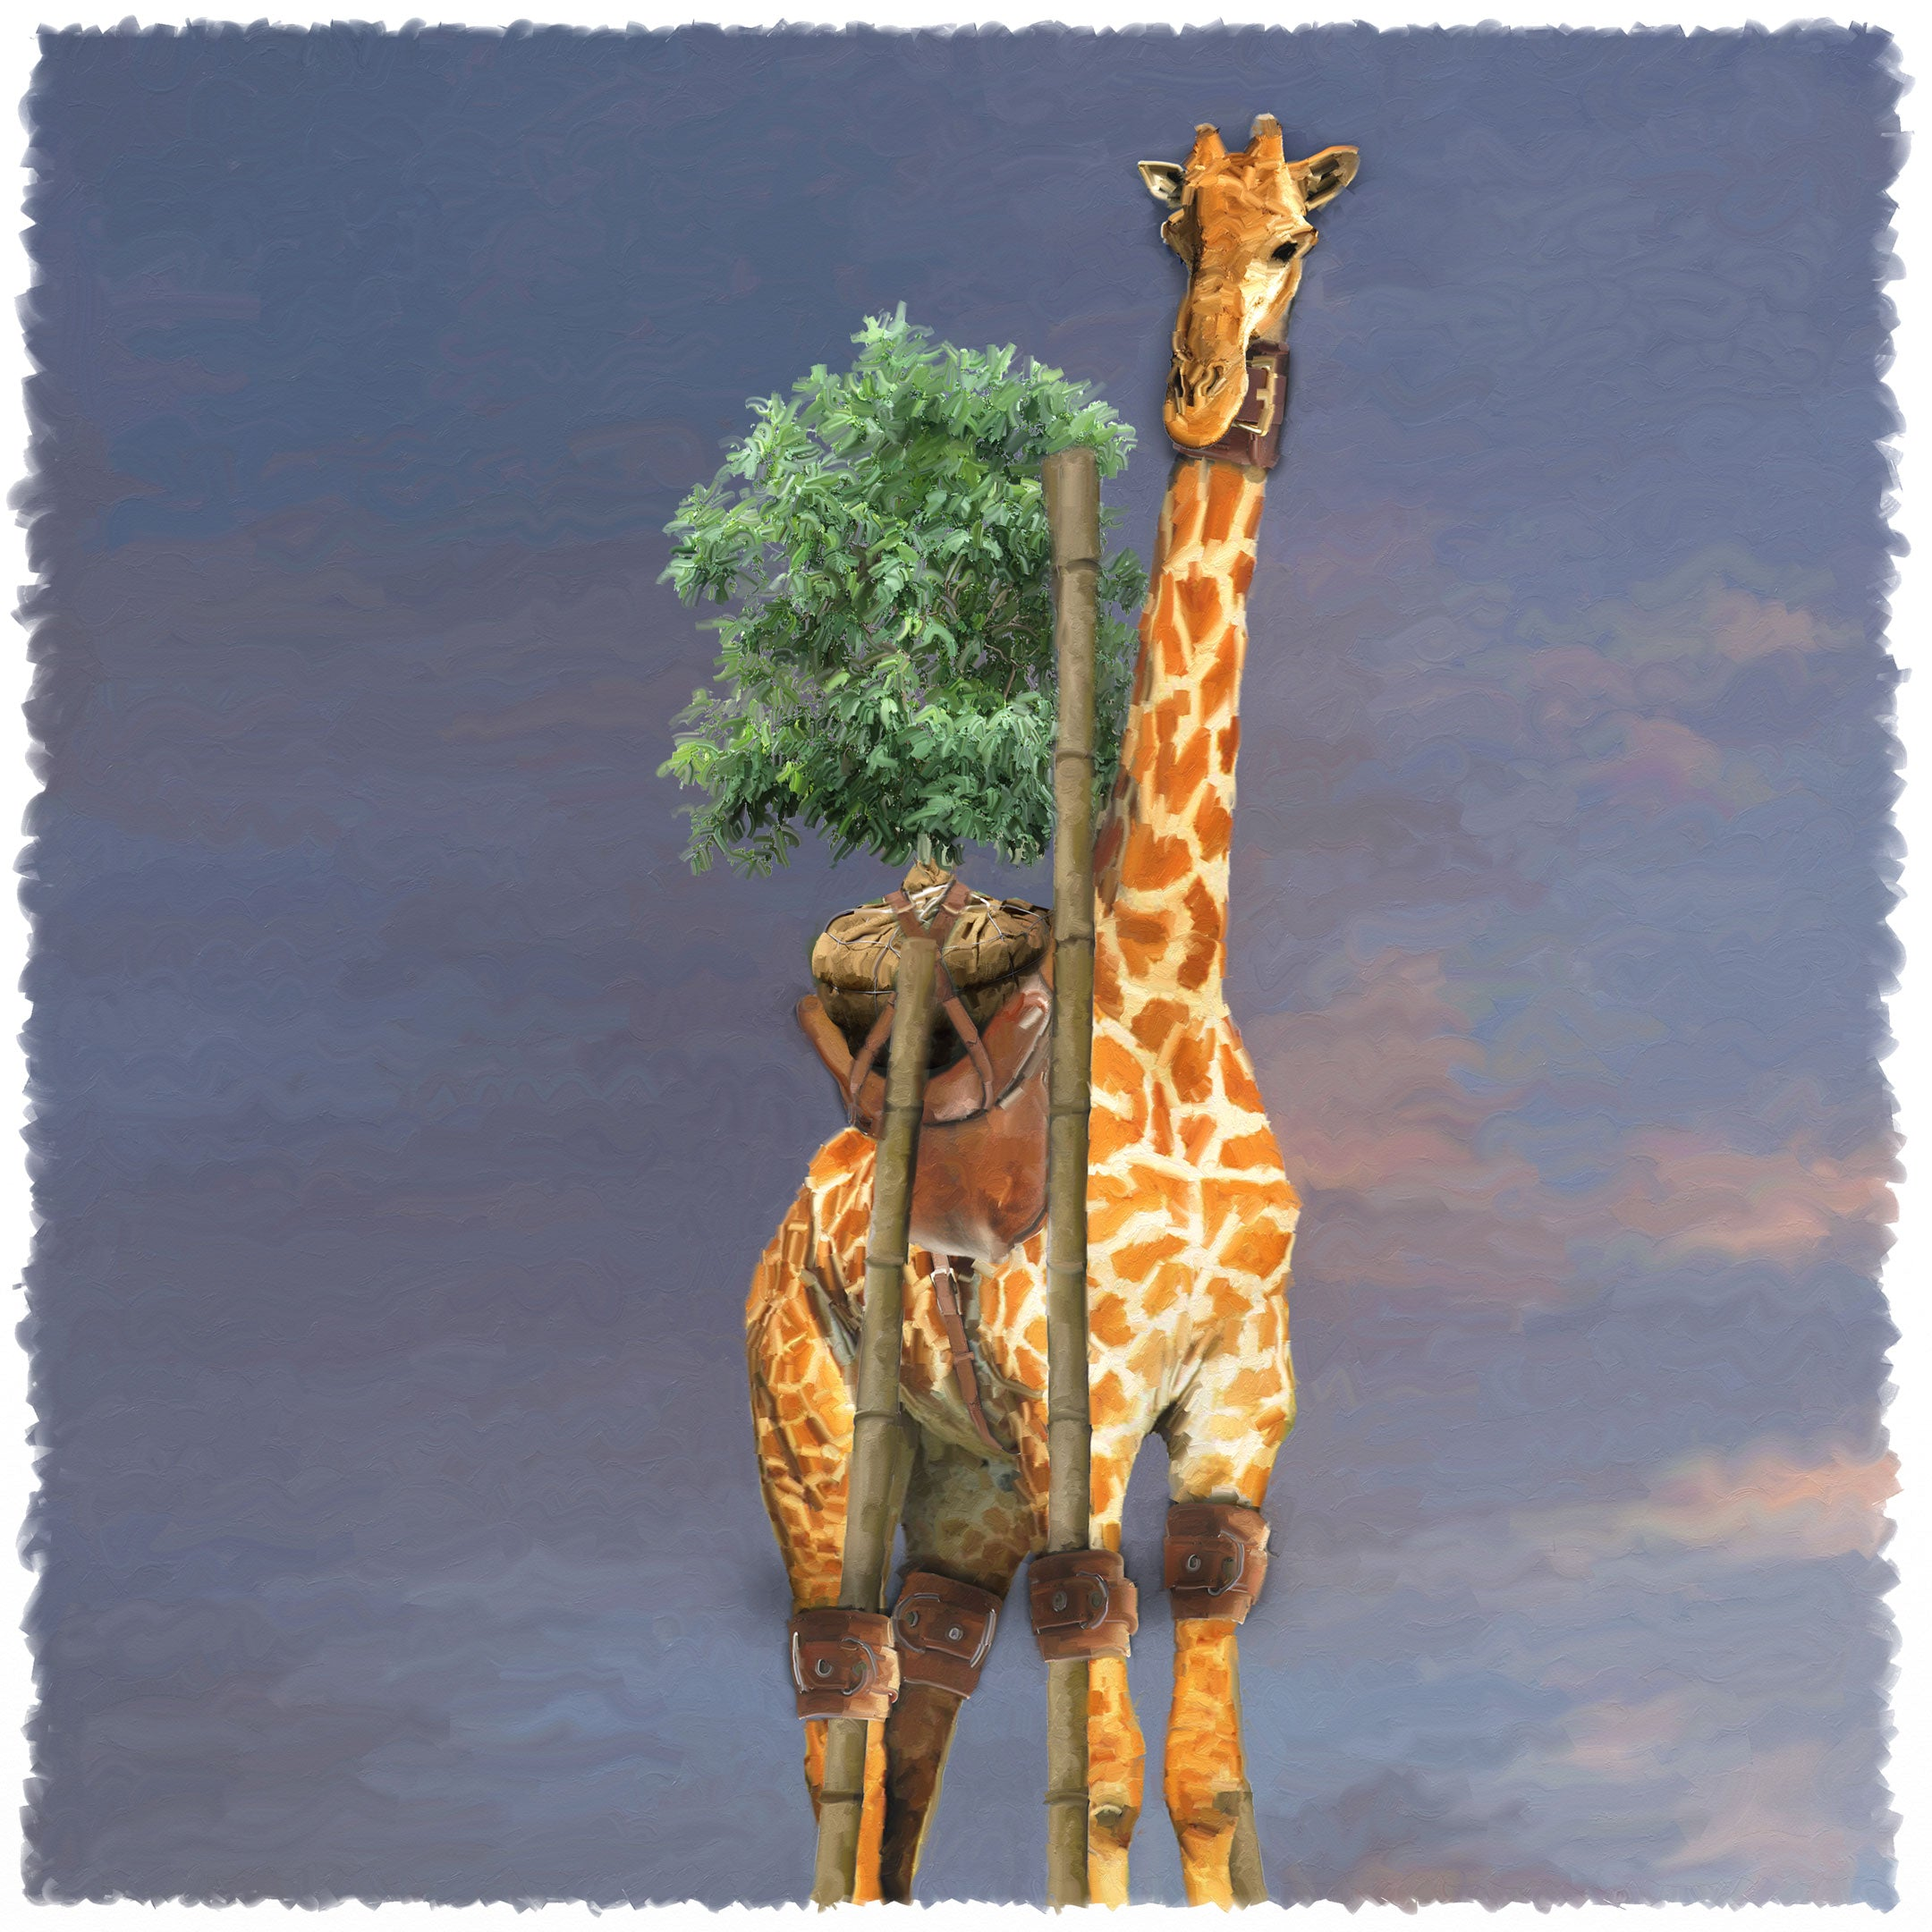 13 - The Giraffe and the Tree